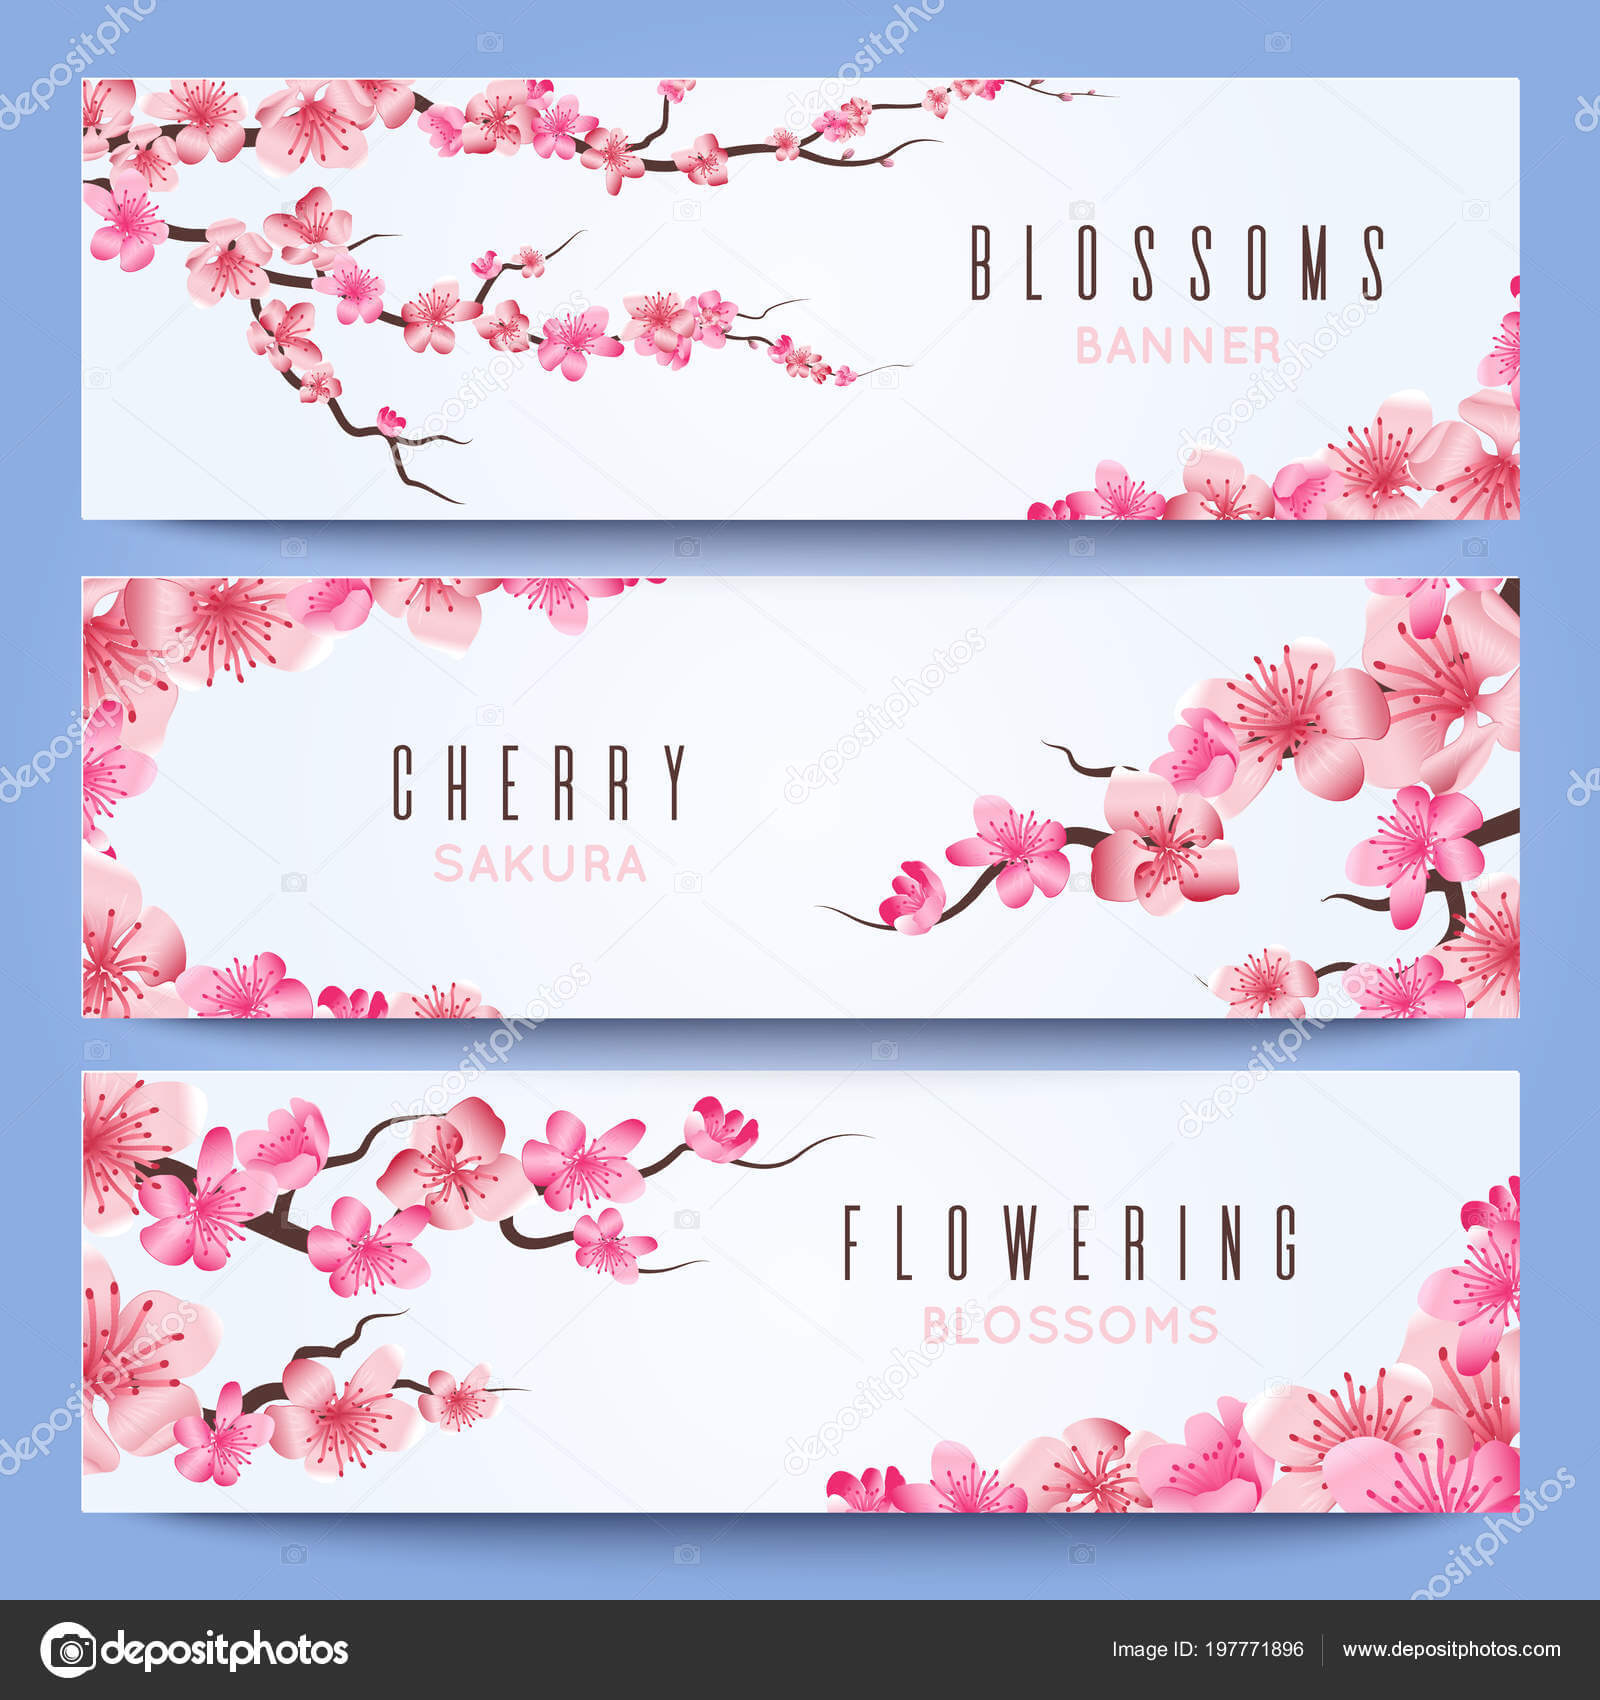 Wedding Banners Template With Spring Japan Sakura, Cherry Intended For Wedding Banner Design Templates